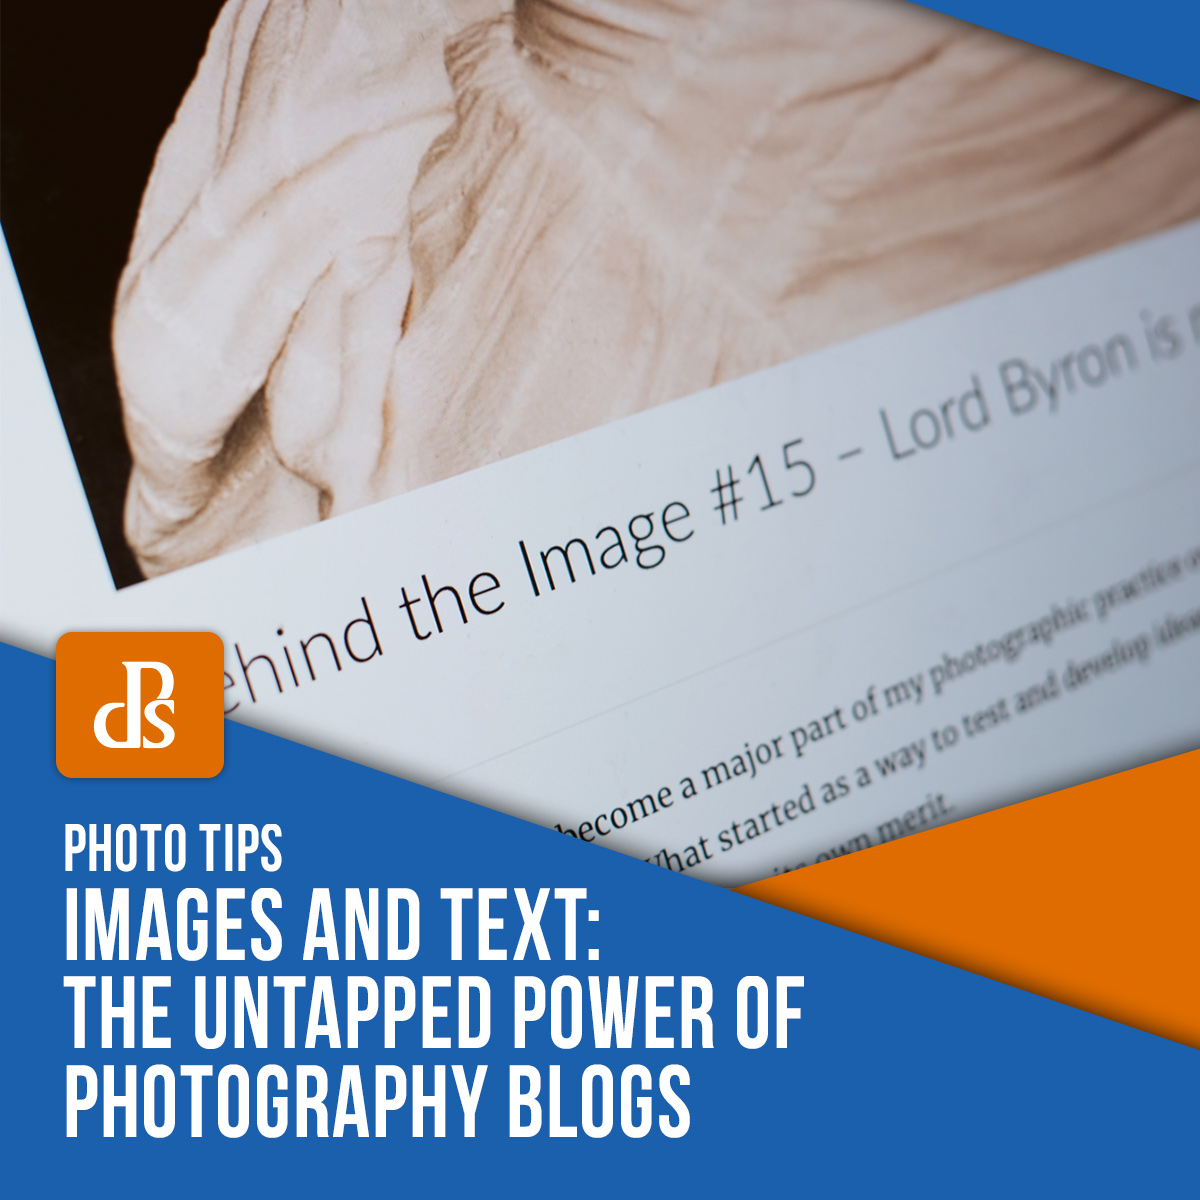 The untapped power of photography blogs featured image